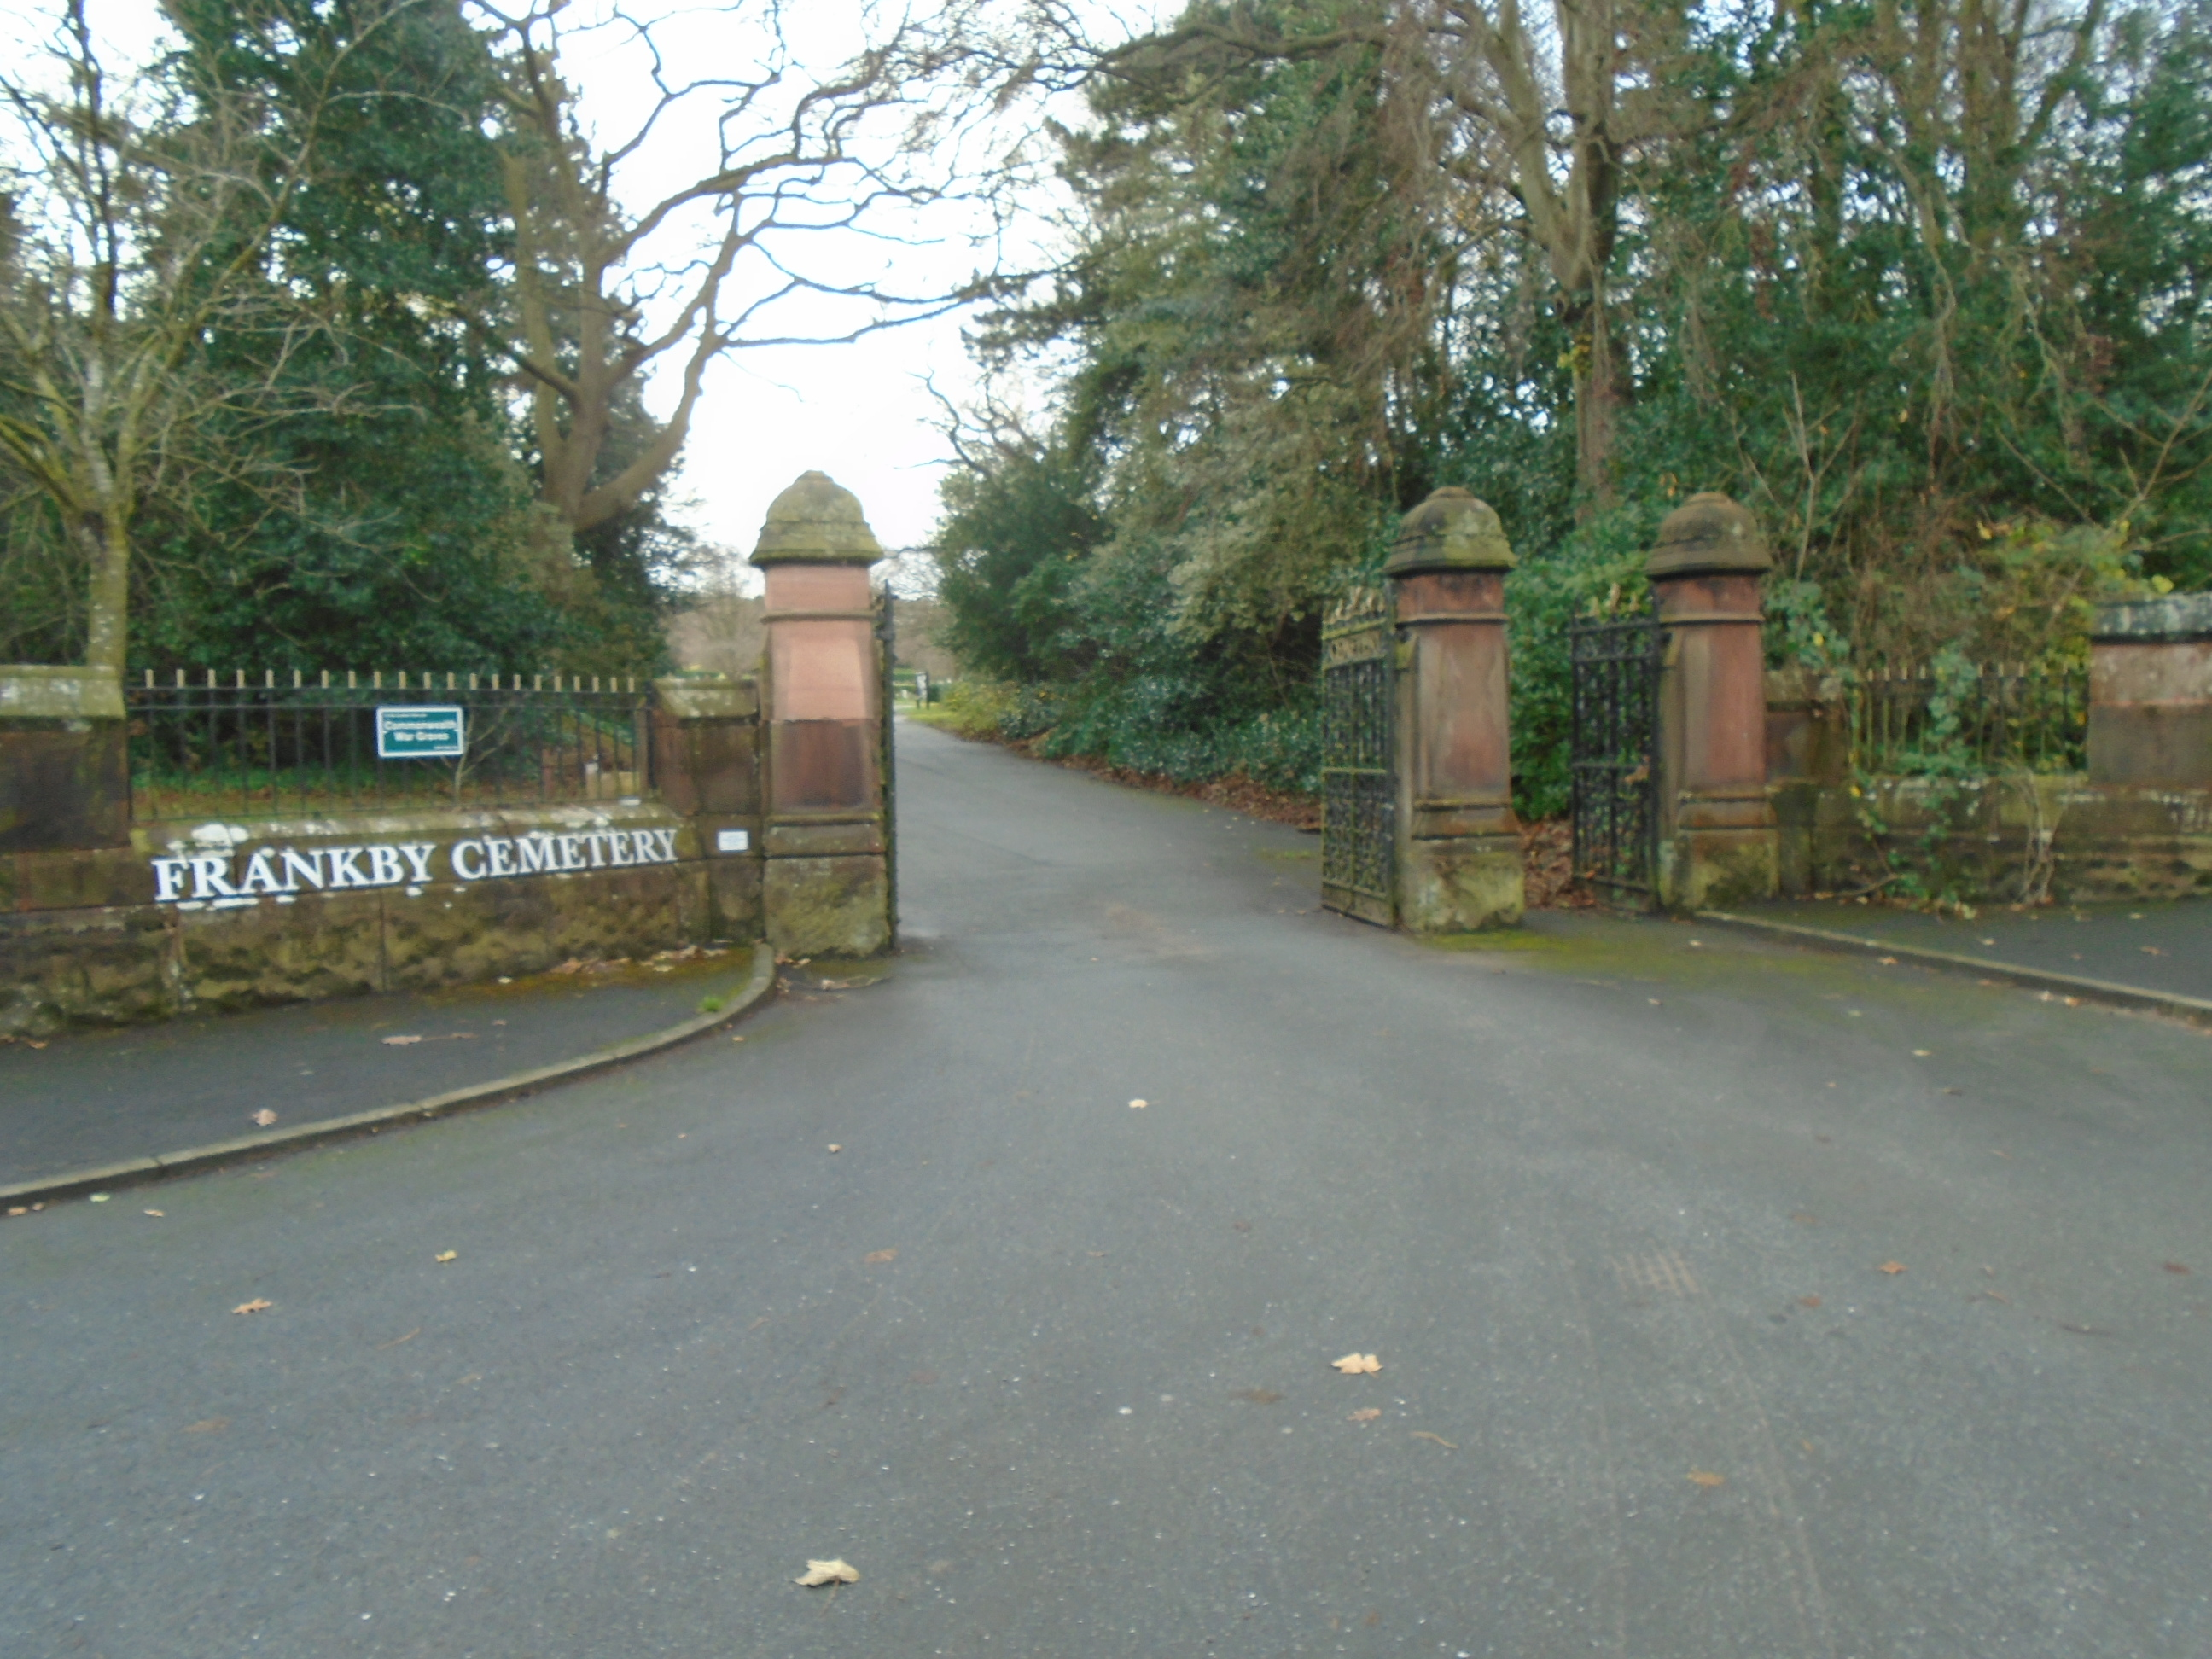 Frankby Cemetery